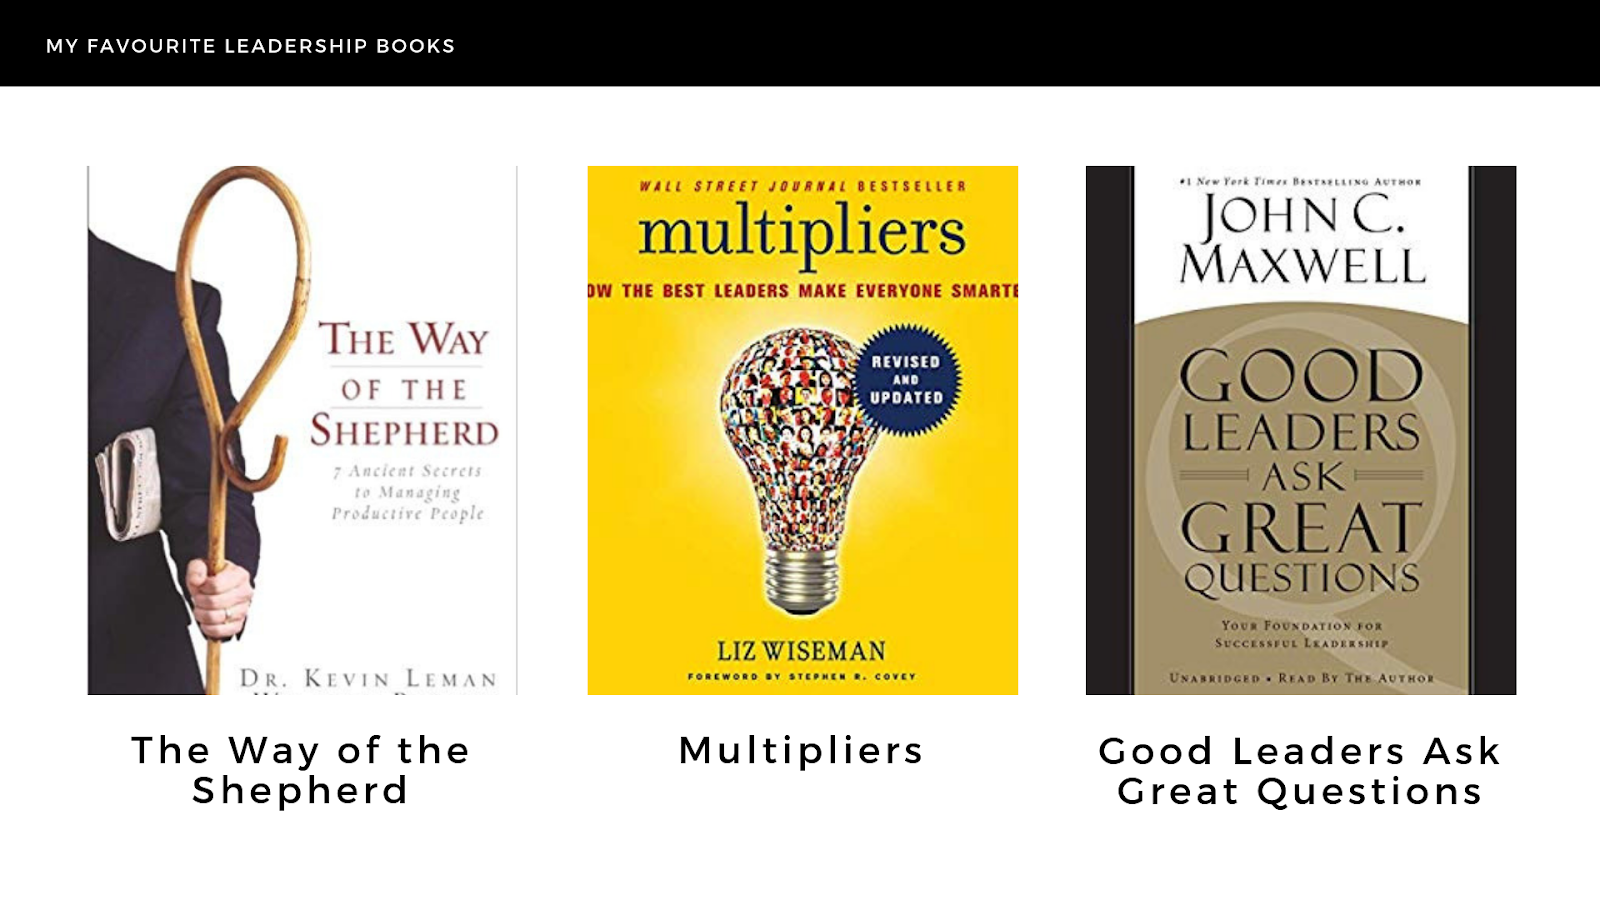 My Favorite Leadership Books